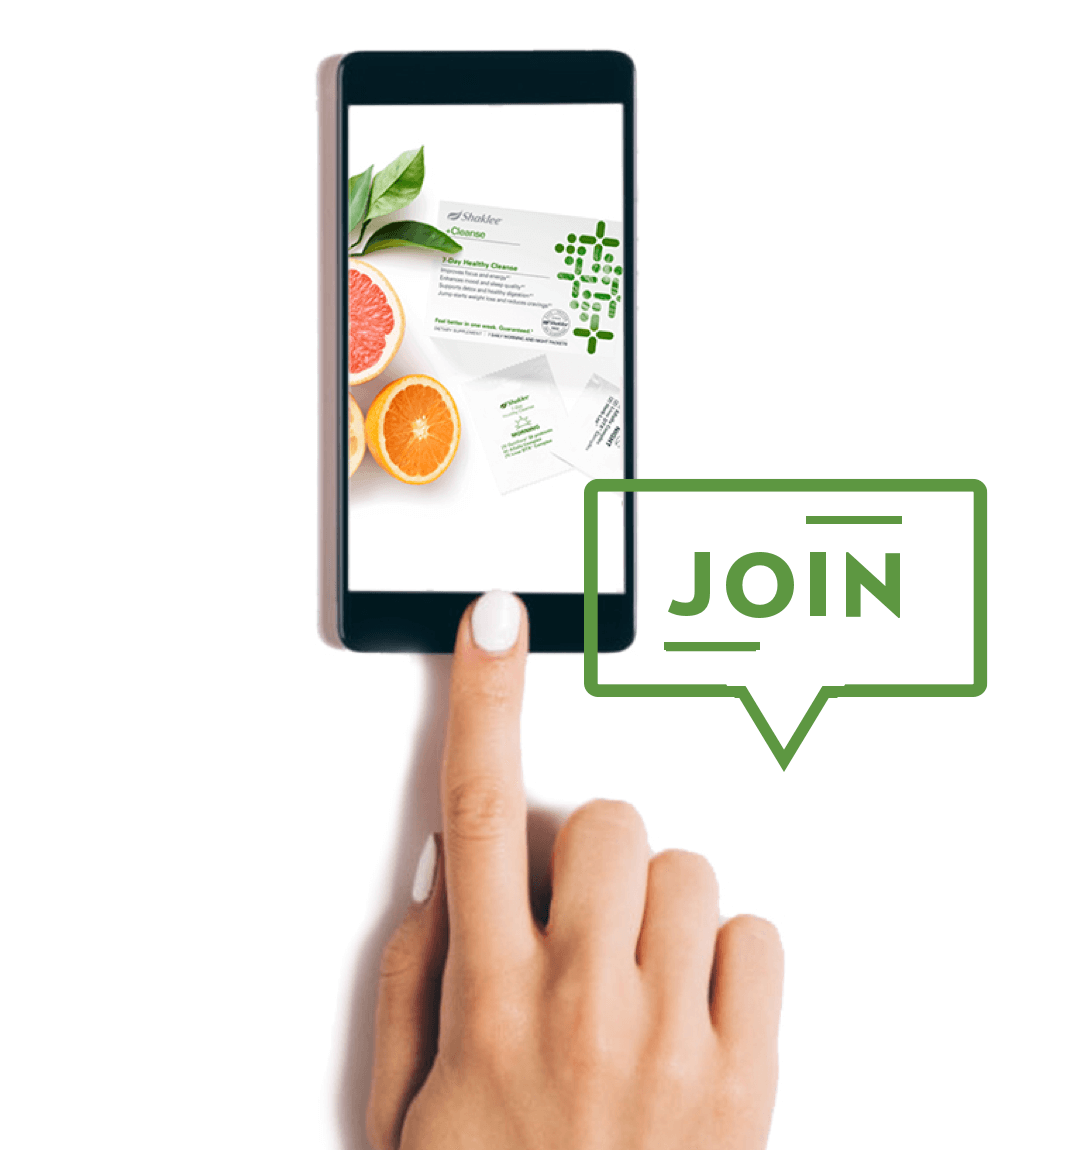 Join Shaklee as a Preferred Member